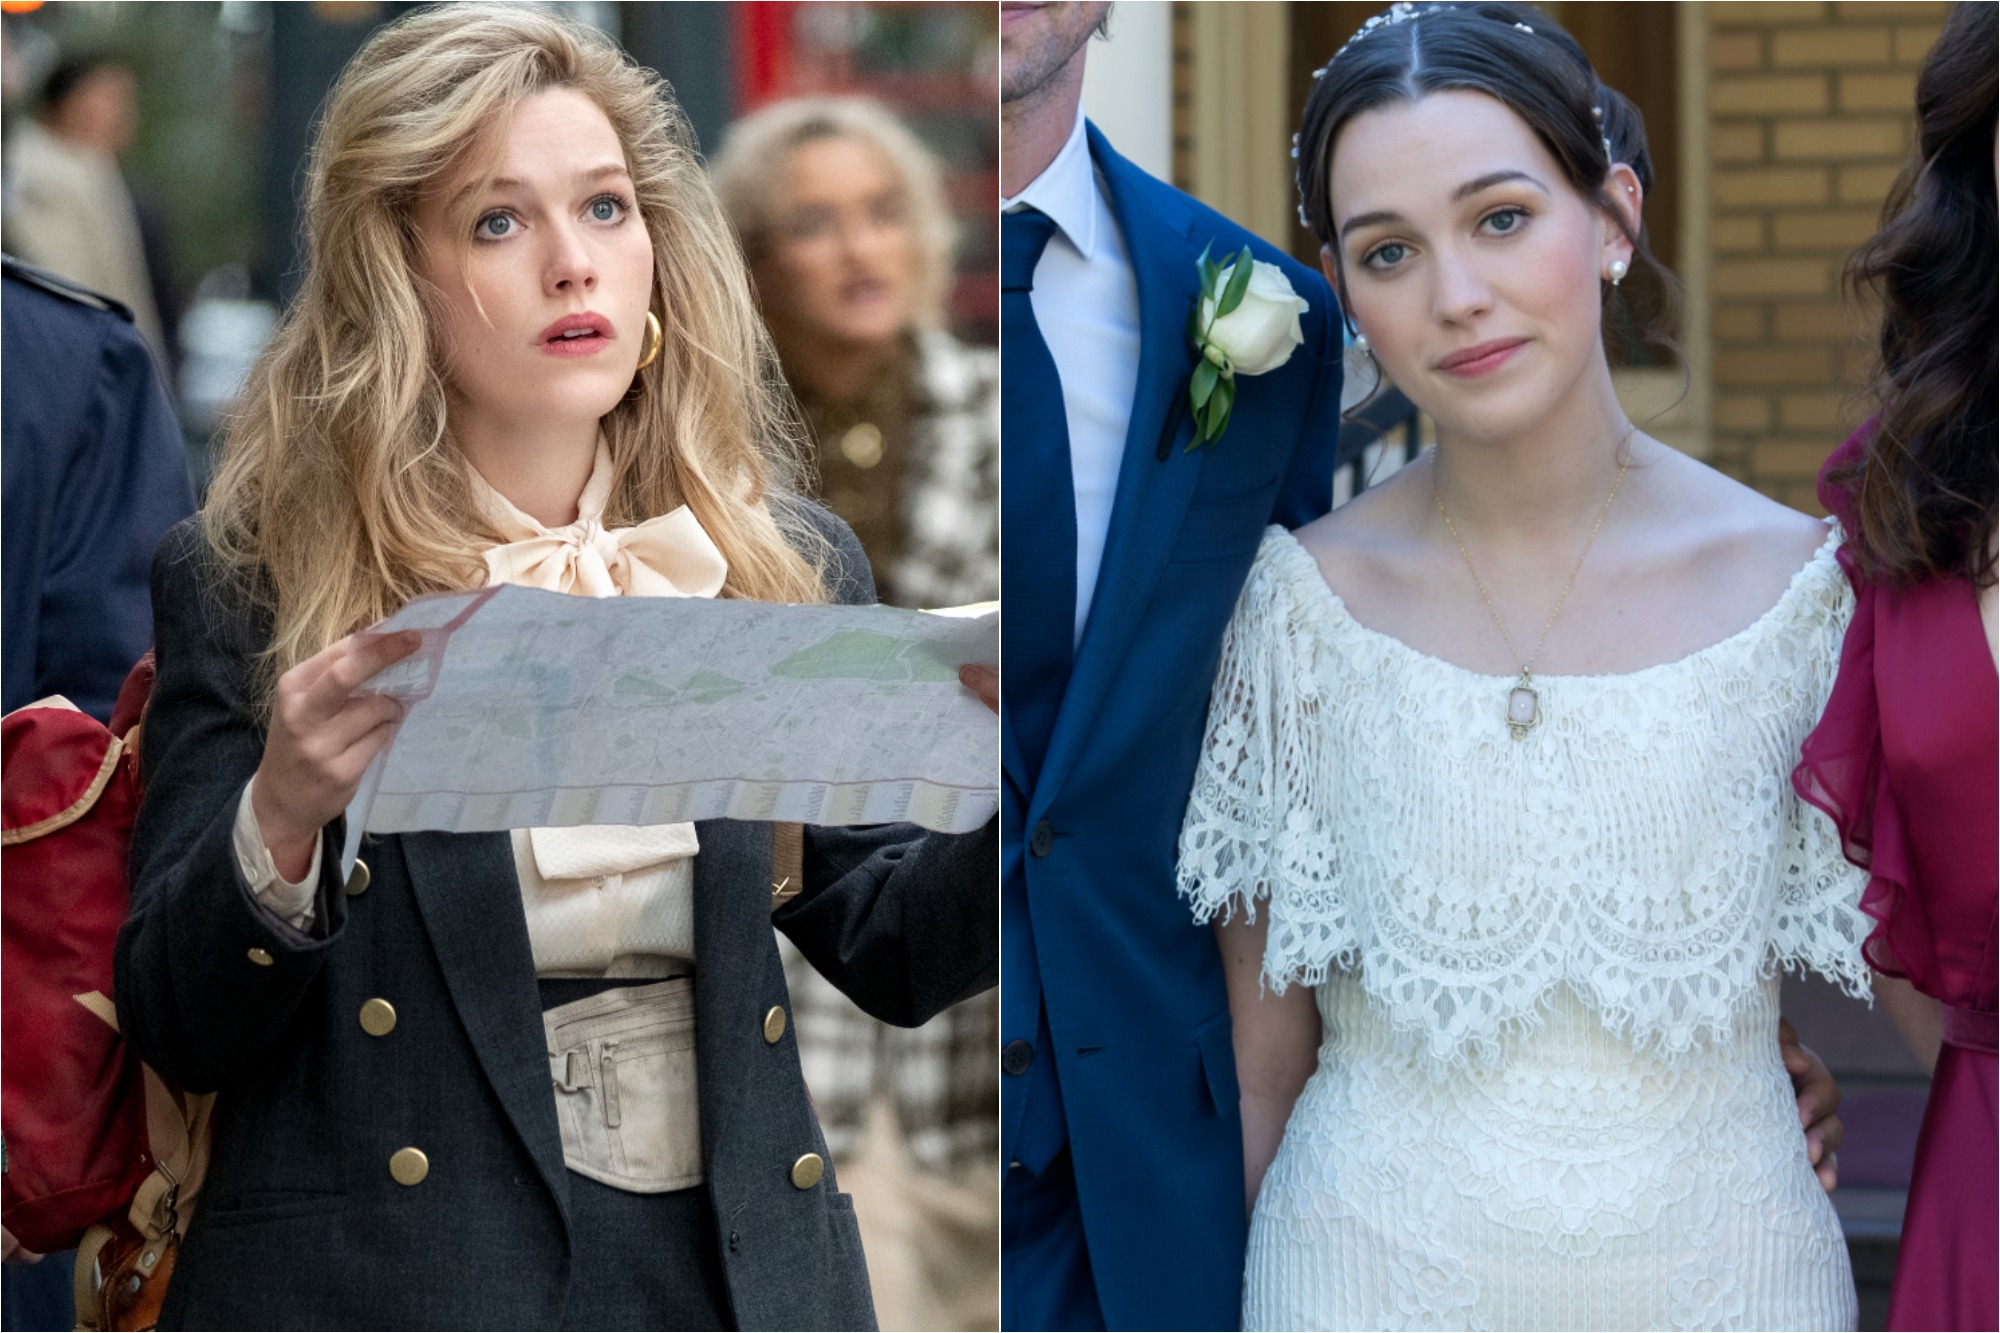 Victoria Pedretti in Episode 1 as Dani in 'THE HAUNTING OF BLY MANOR' / Pedretti as Nell on her wedding day in 'THE HAUNTING OF HILL HOUSE'